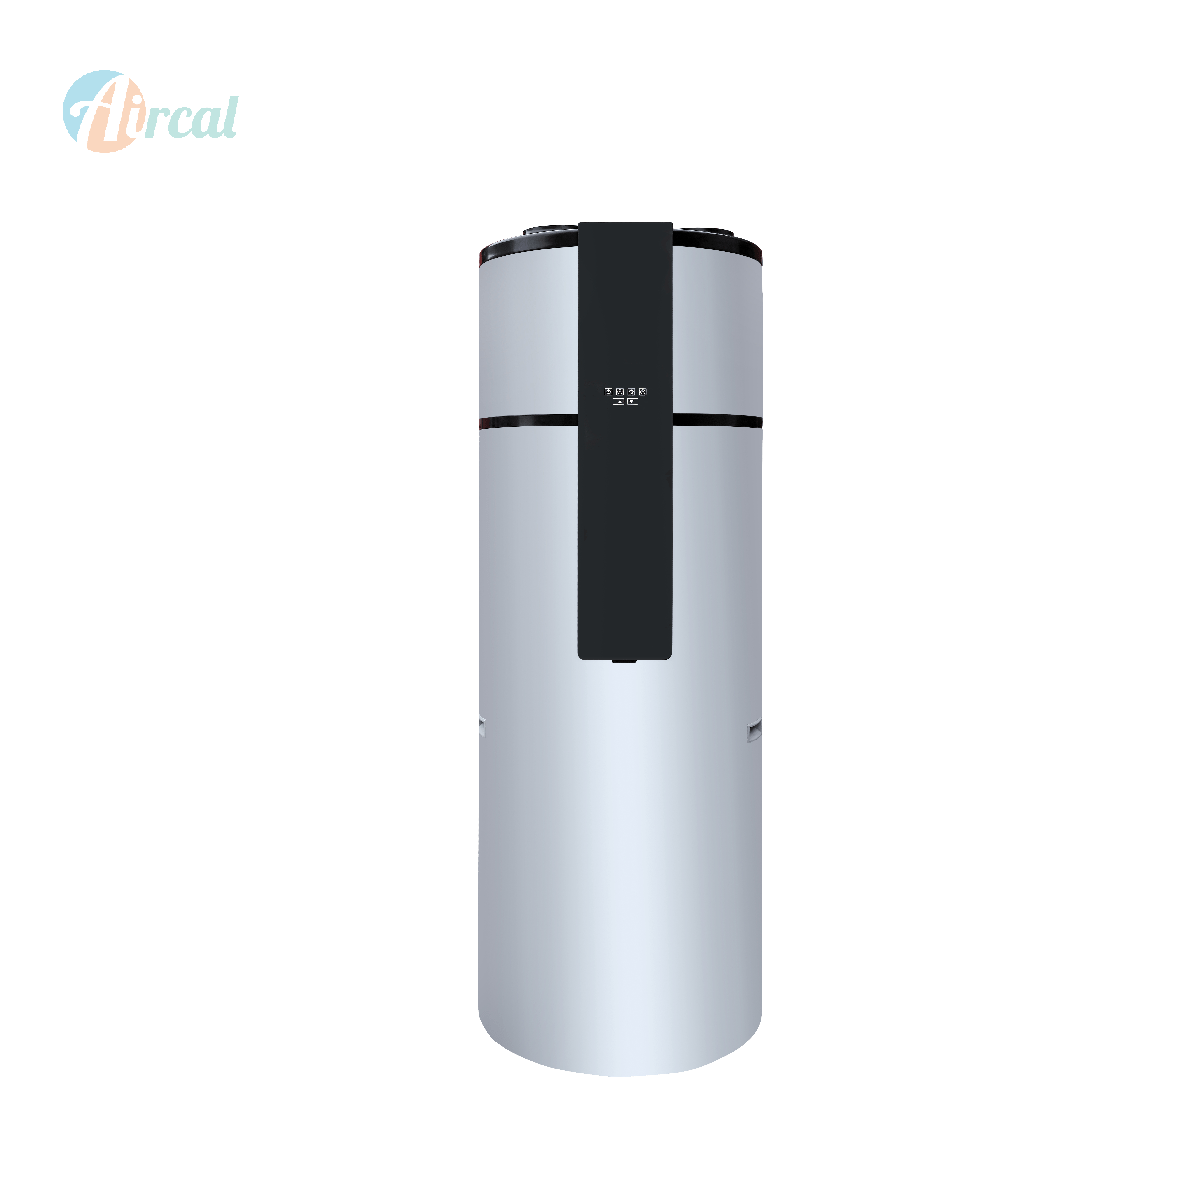 Noble 300L Sanitary Water Heat Pump high COP All in one Domestic Hot Water heater